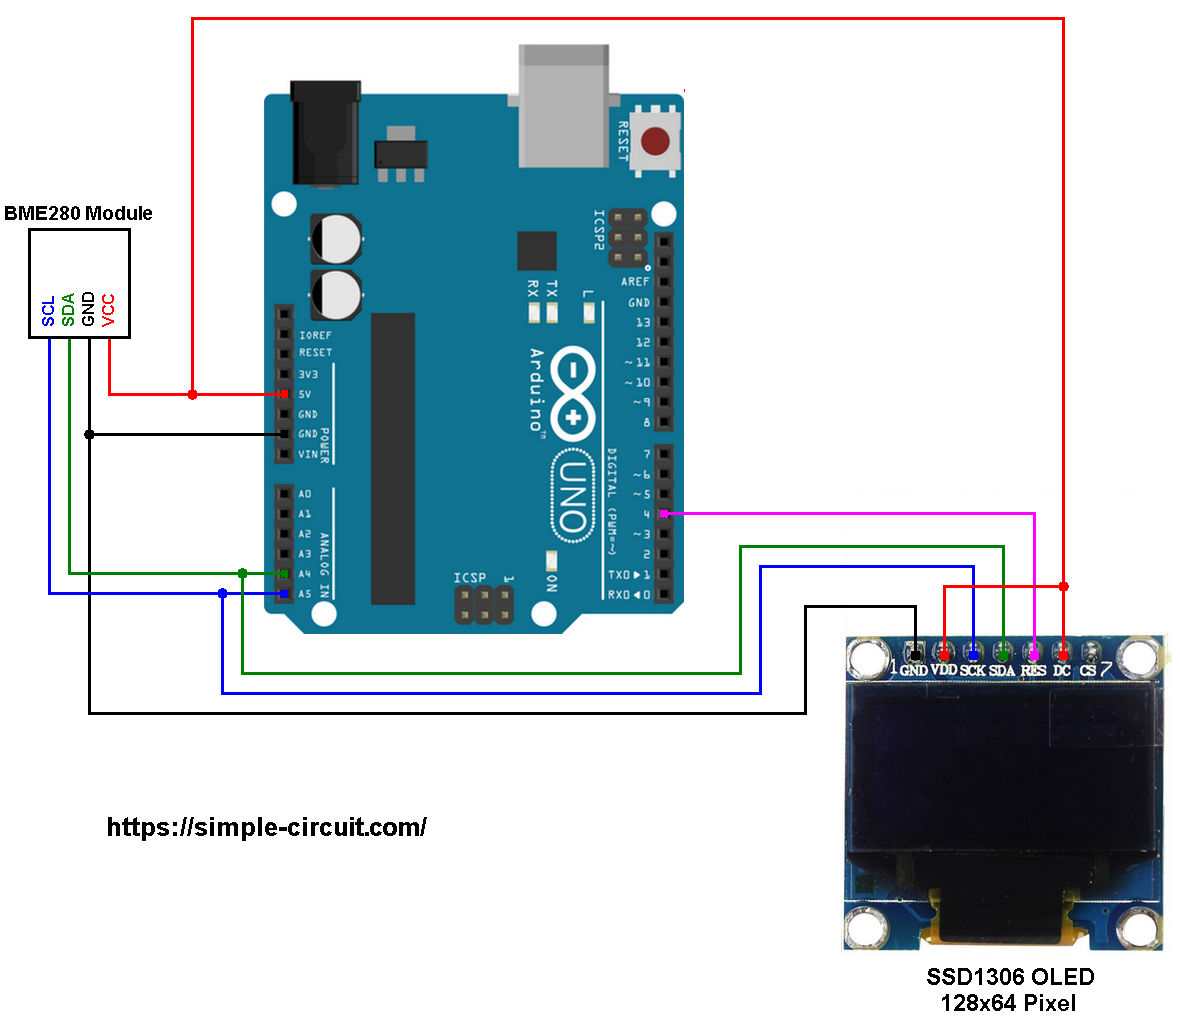 Arduino weather station with SSD1306 OLED and BME280 sensor